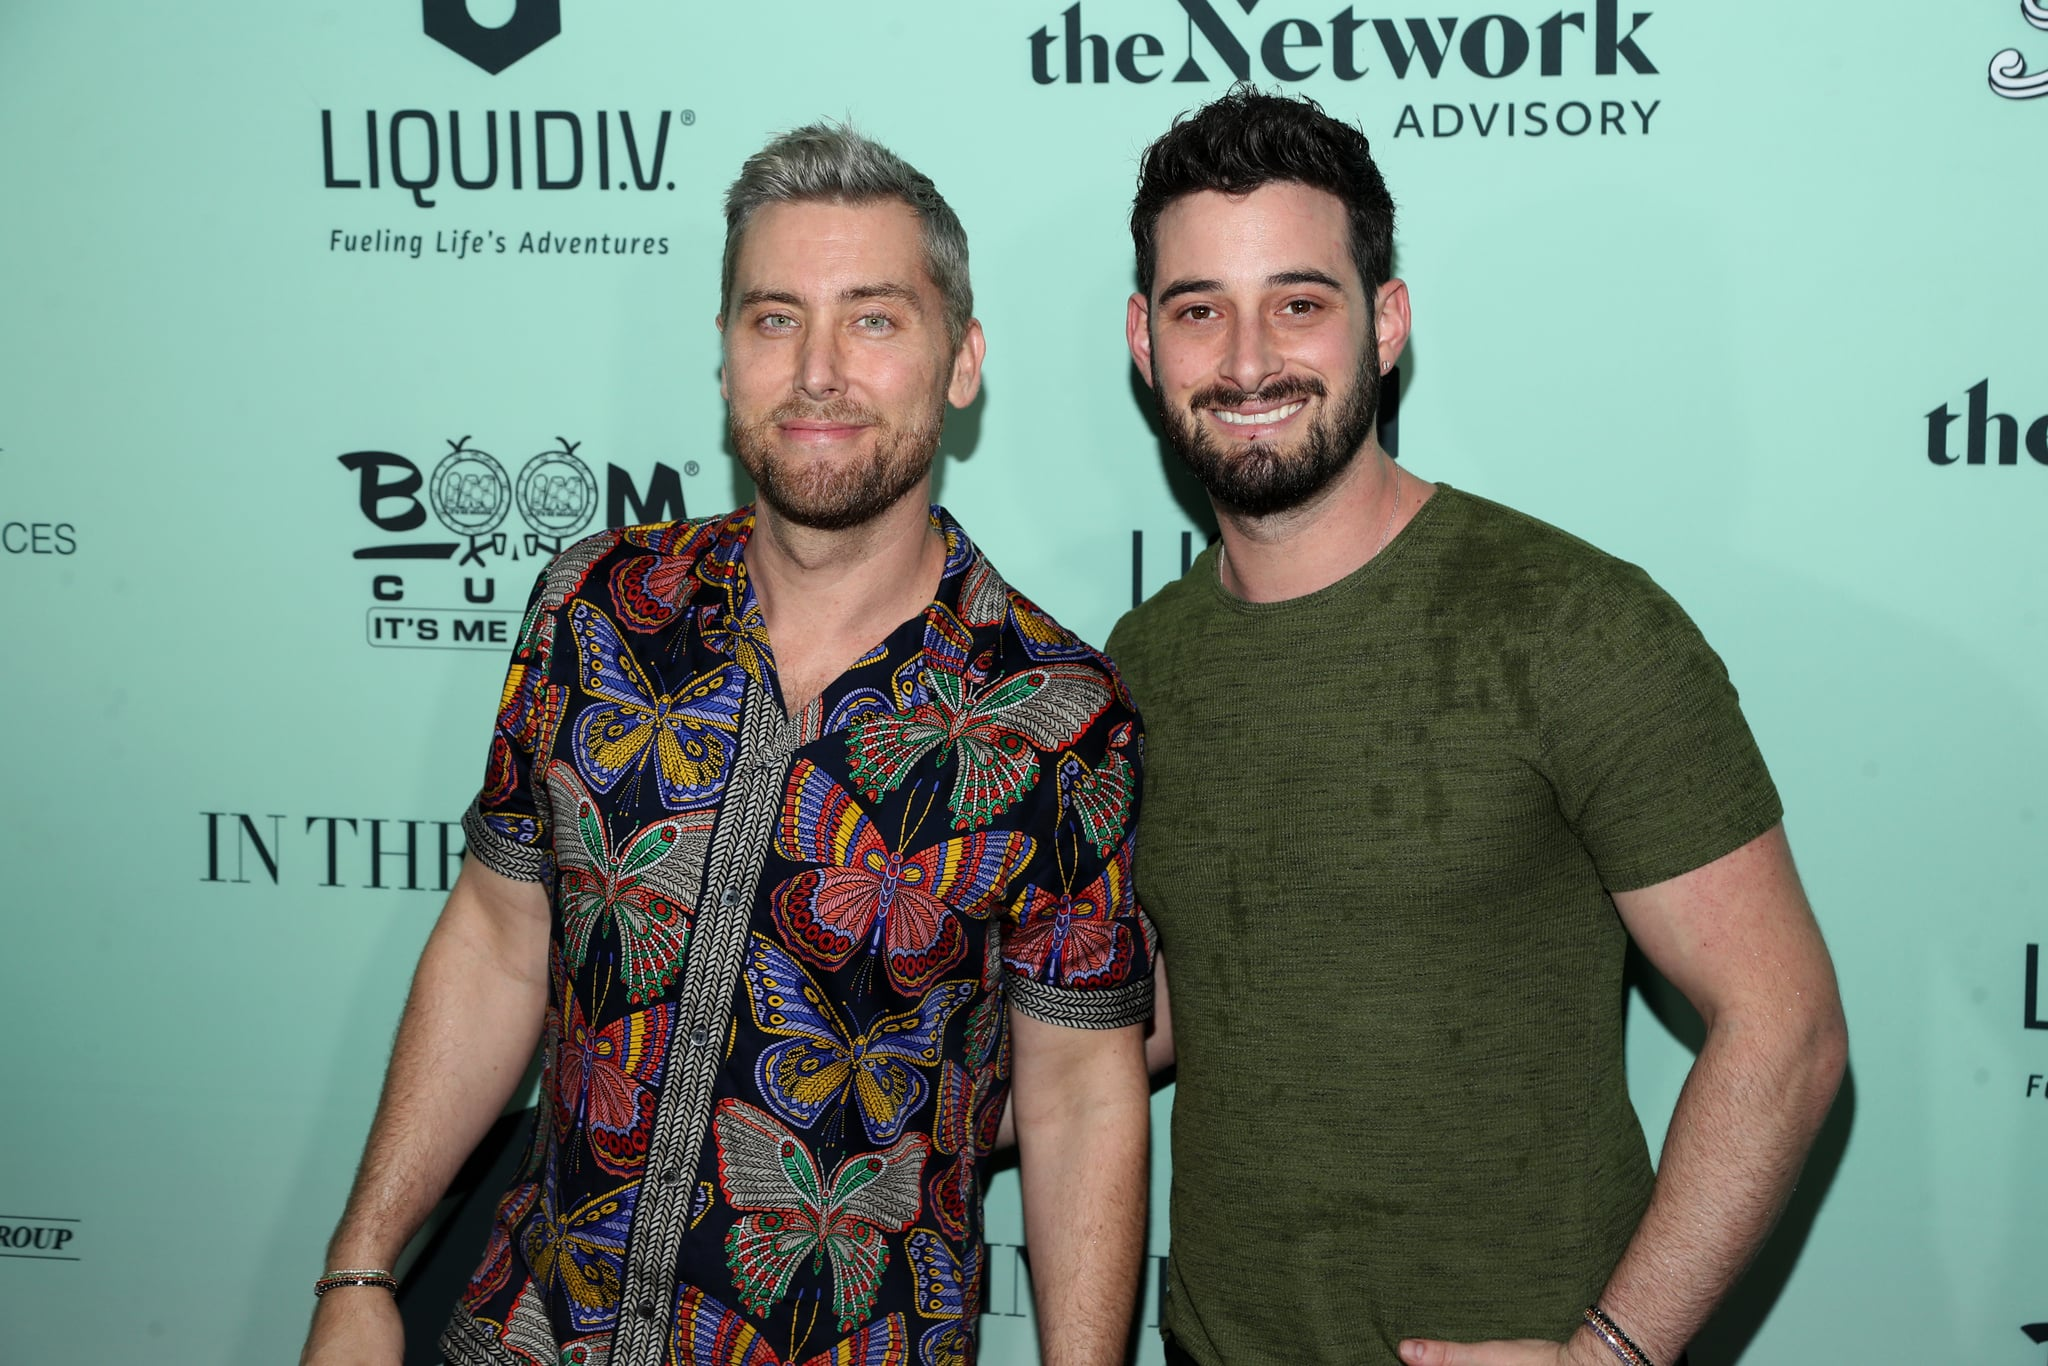 MIAMI, FLORIDA - JANUARY 31: Lance Bass and Michael Turchin attend Bootsy On The Water Miami Takeover 2020 on January 31, 2020 in Miami, Florida. (Photo by Jerritt Clark/Getty Images for In The Know Experiences)